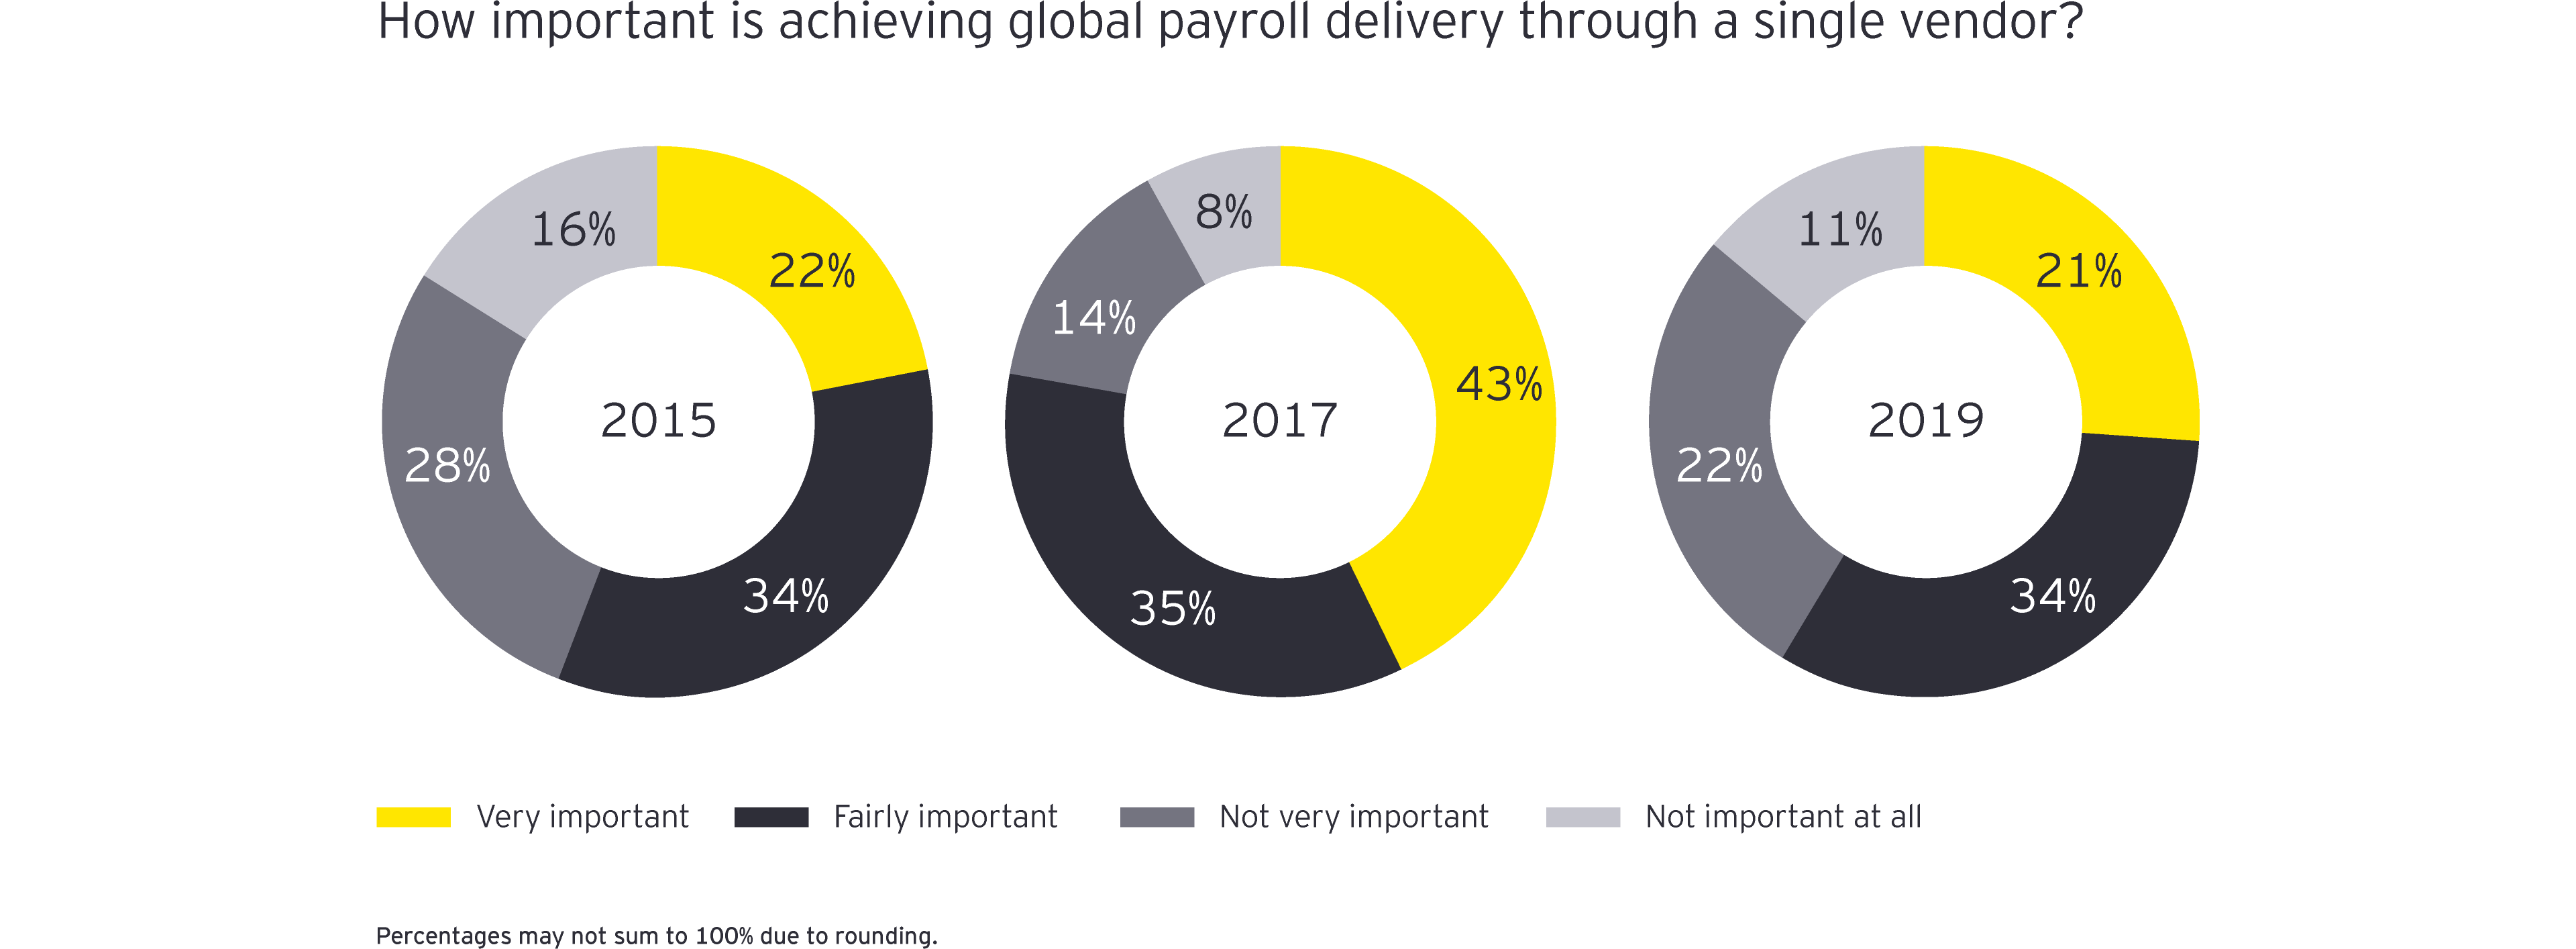 How important is achieving global payroll delivery through a single vendor